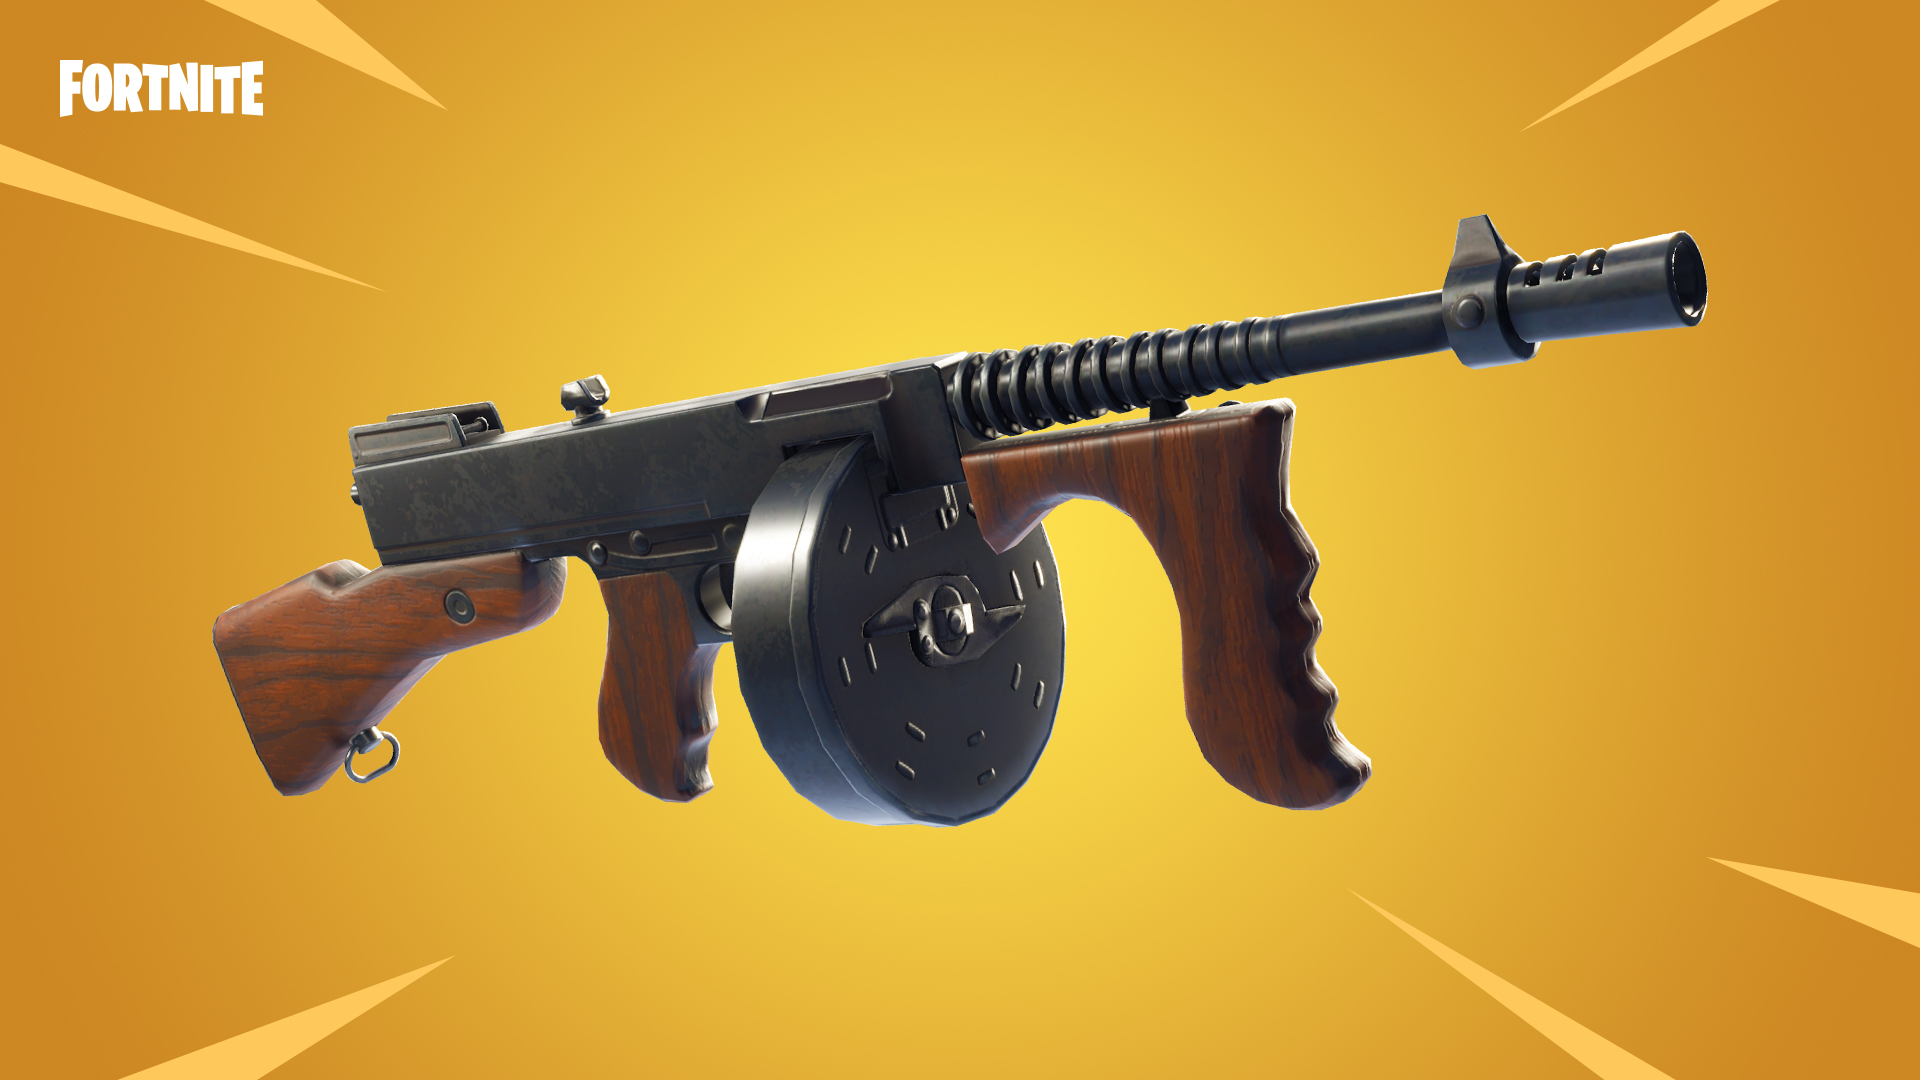 Fortnite's new Playground Mode lets you practice your skills without stressing